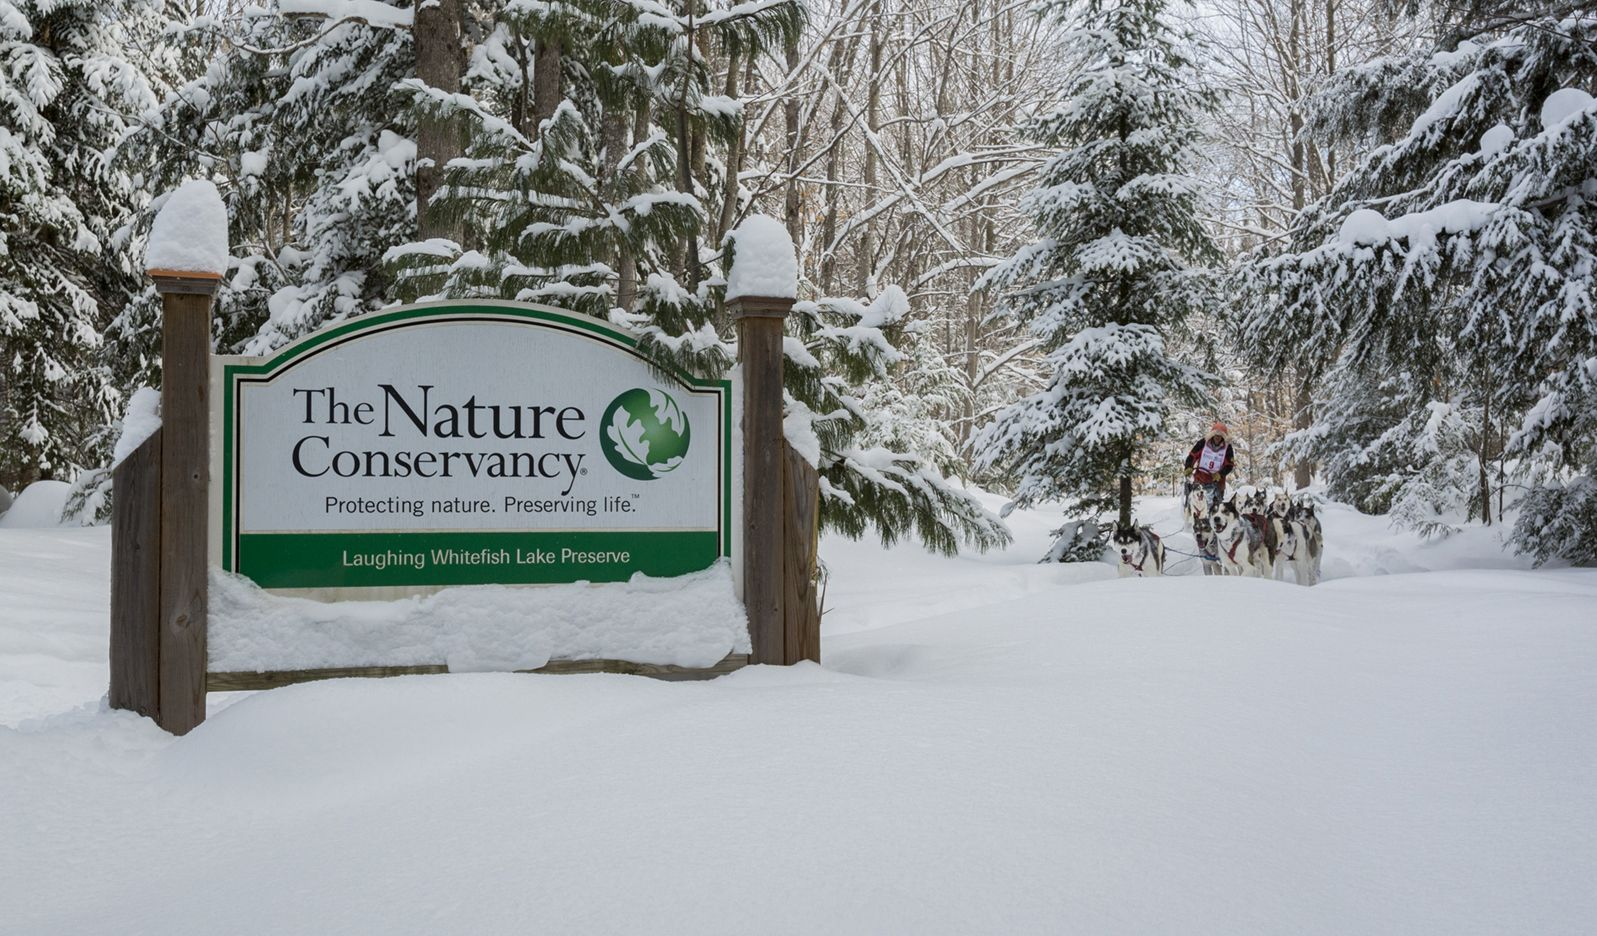 Sled dogs and their driver rush through the snow past a Nature Conservancy sign.